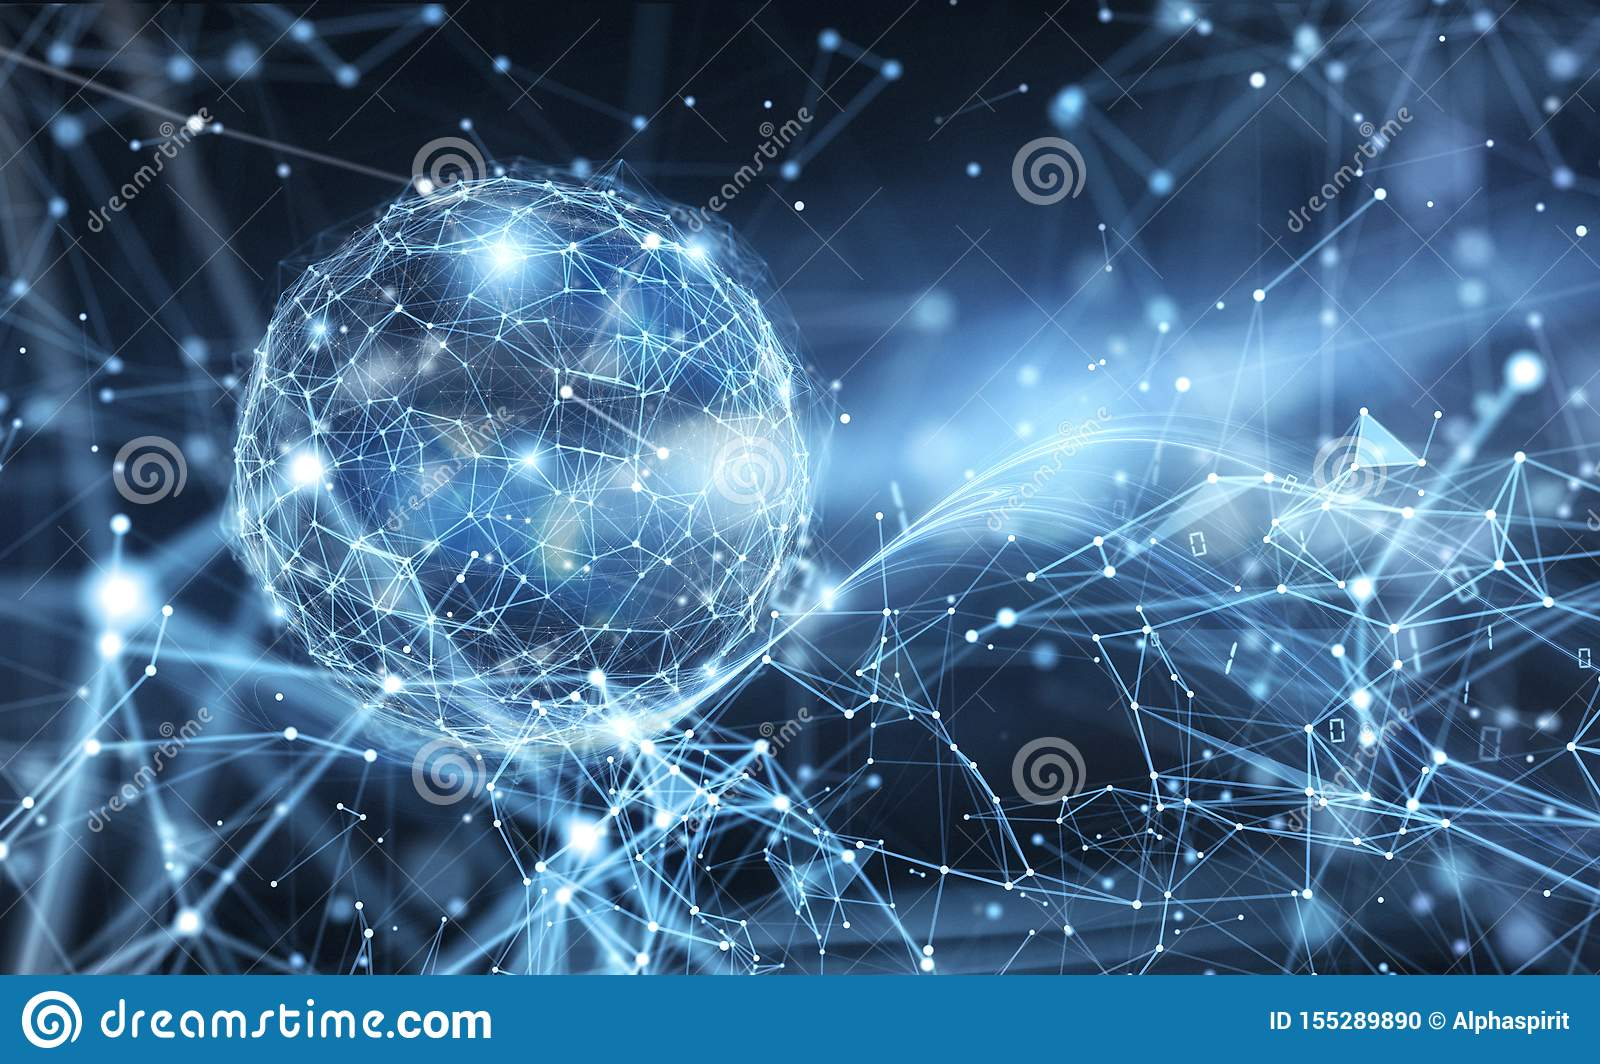 Abstract internet connection network globe background with motion effects.